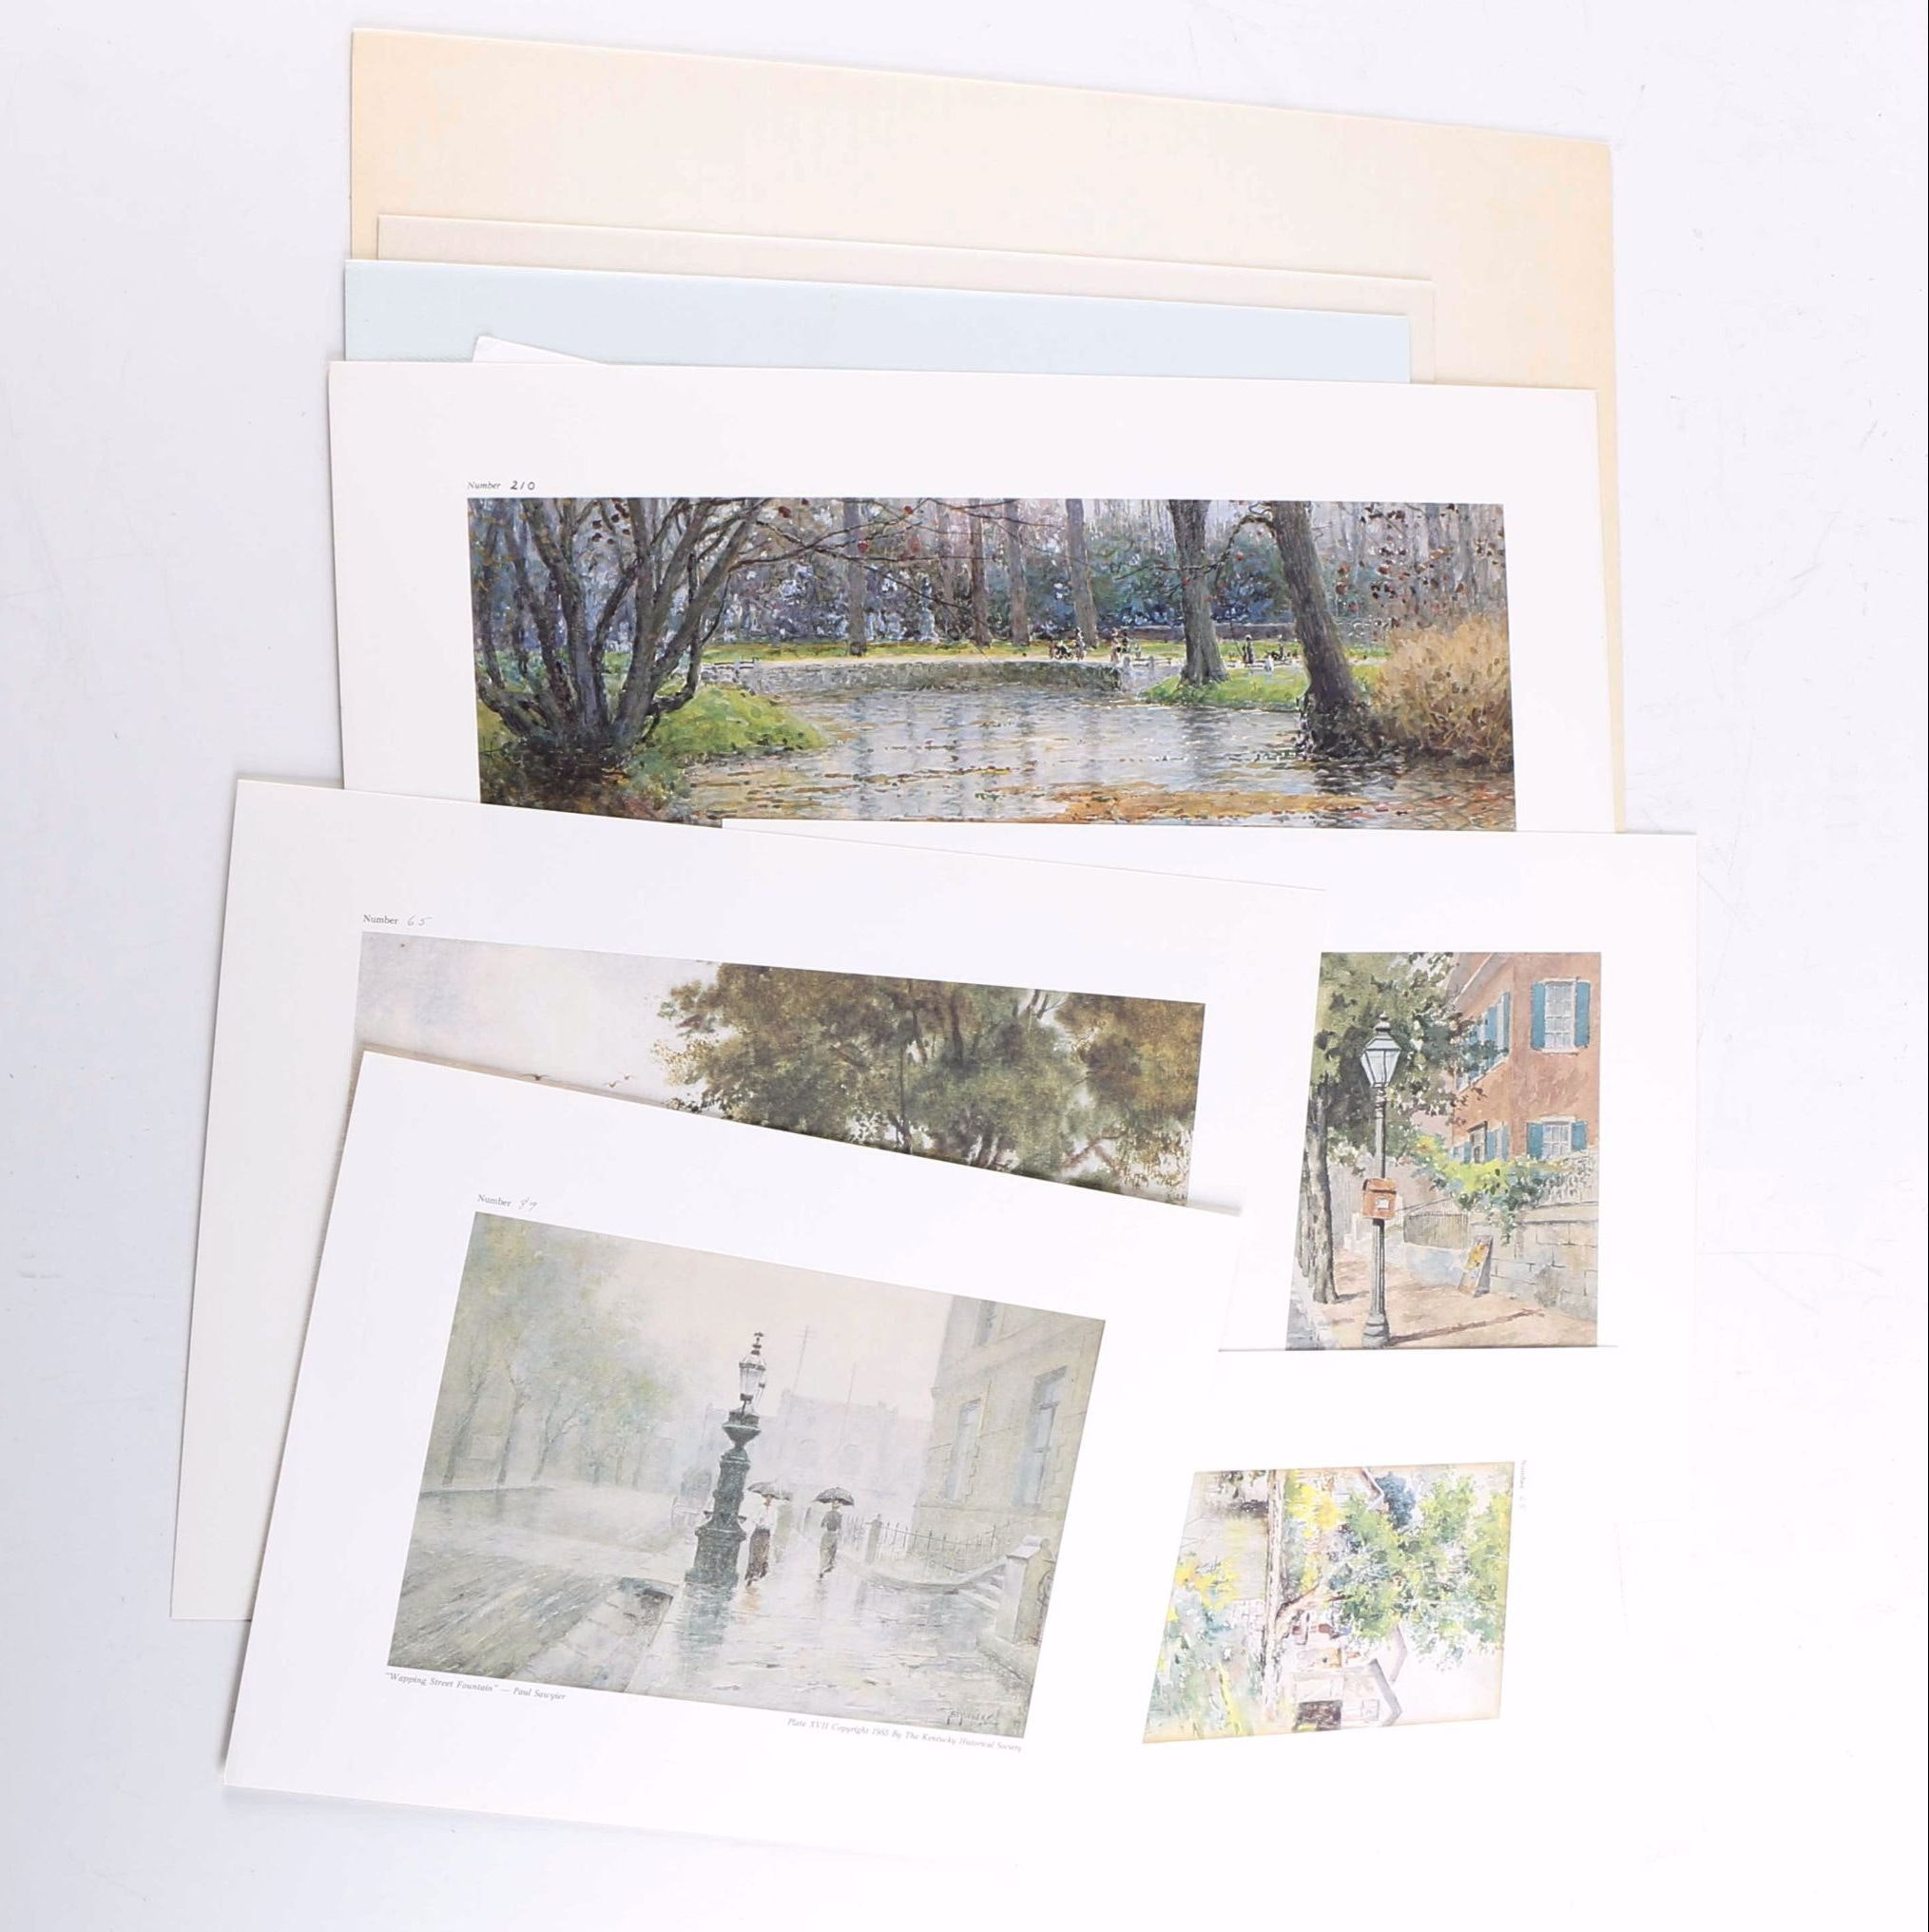 Paul Sawyier Limited Edition Offset Lithographs of Landscapes